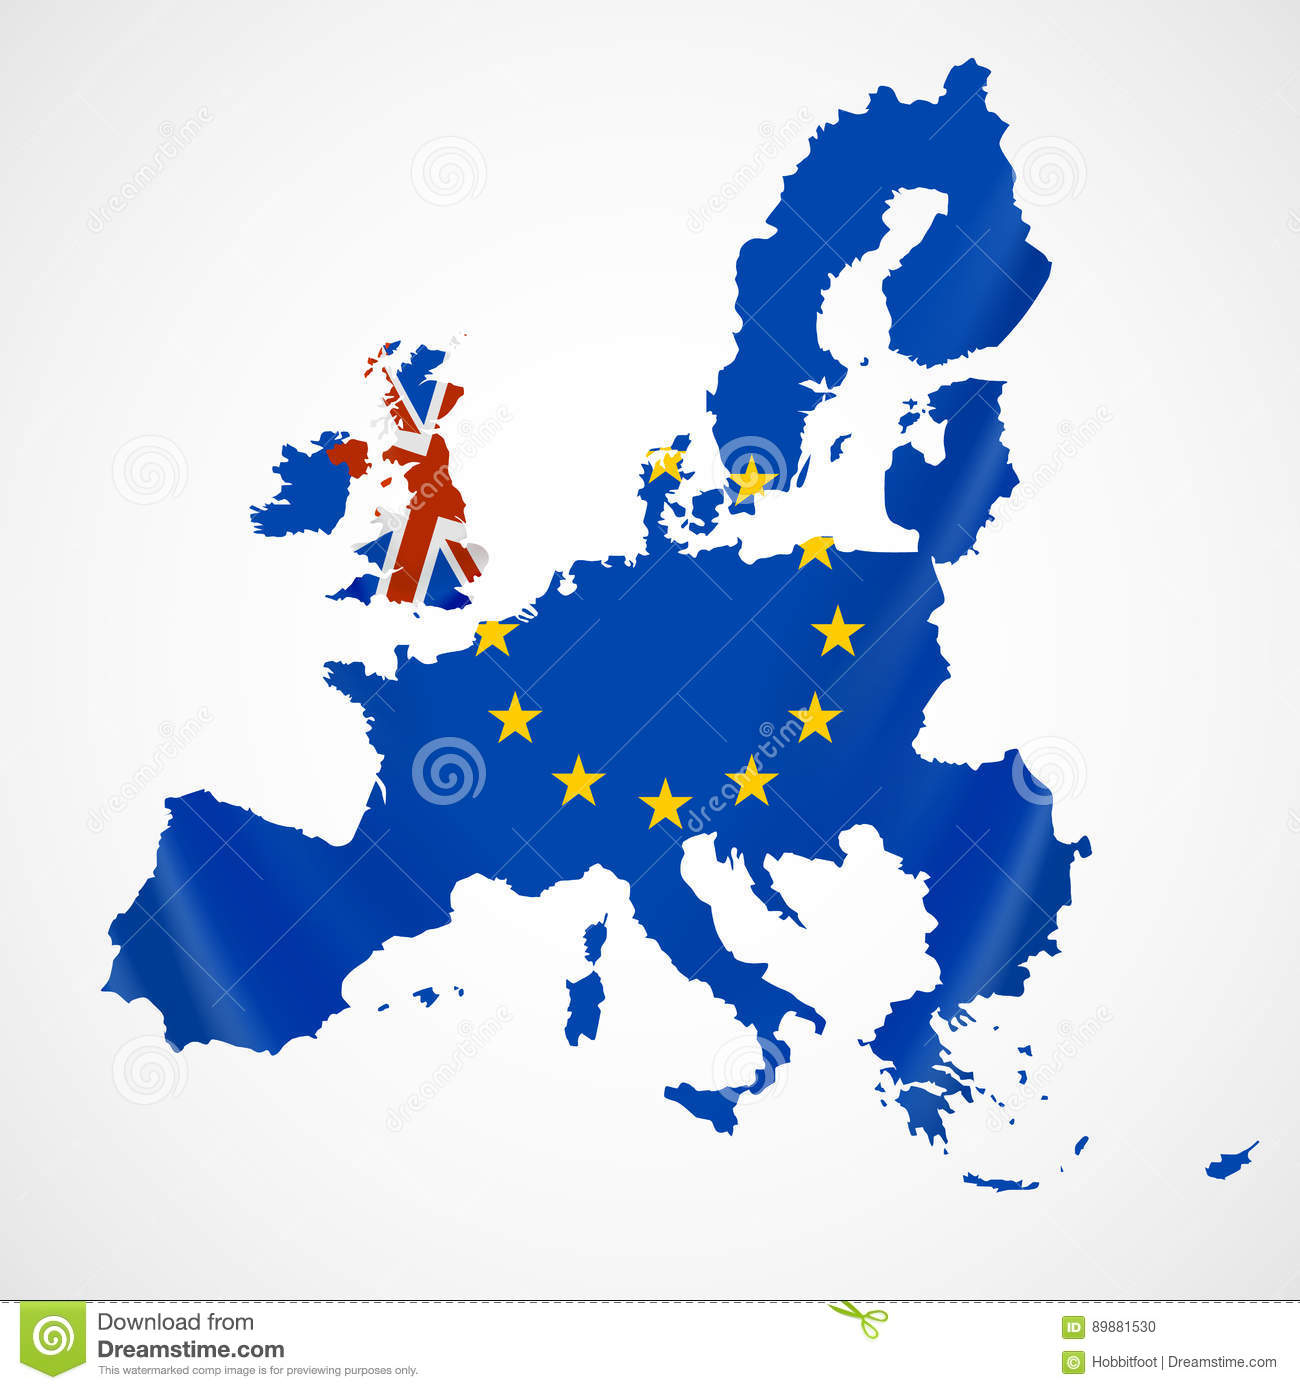 Map of Europe with European Union members and Great Britain or United Kingdom in brexit.